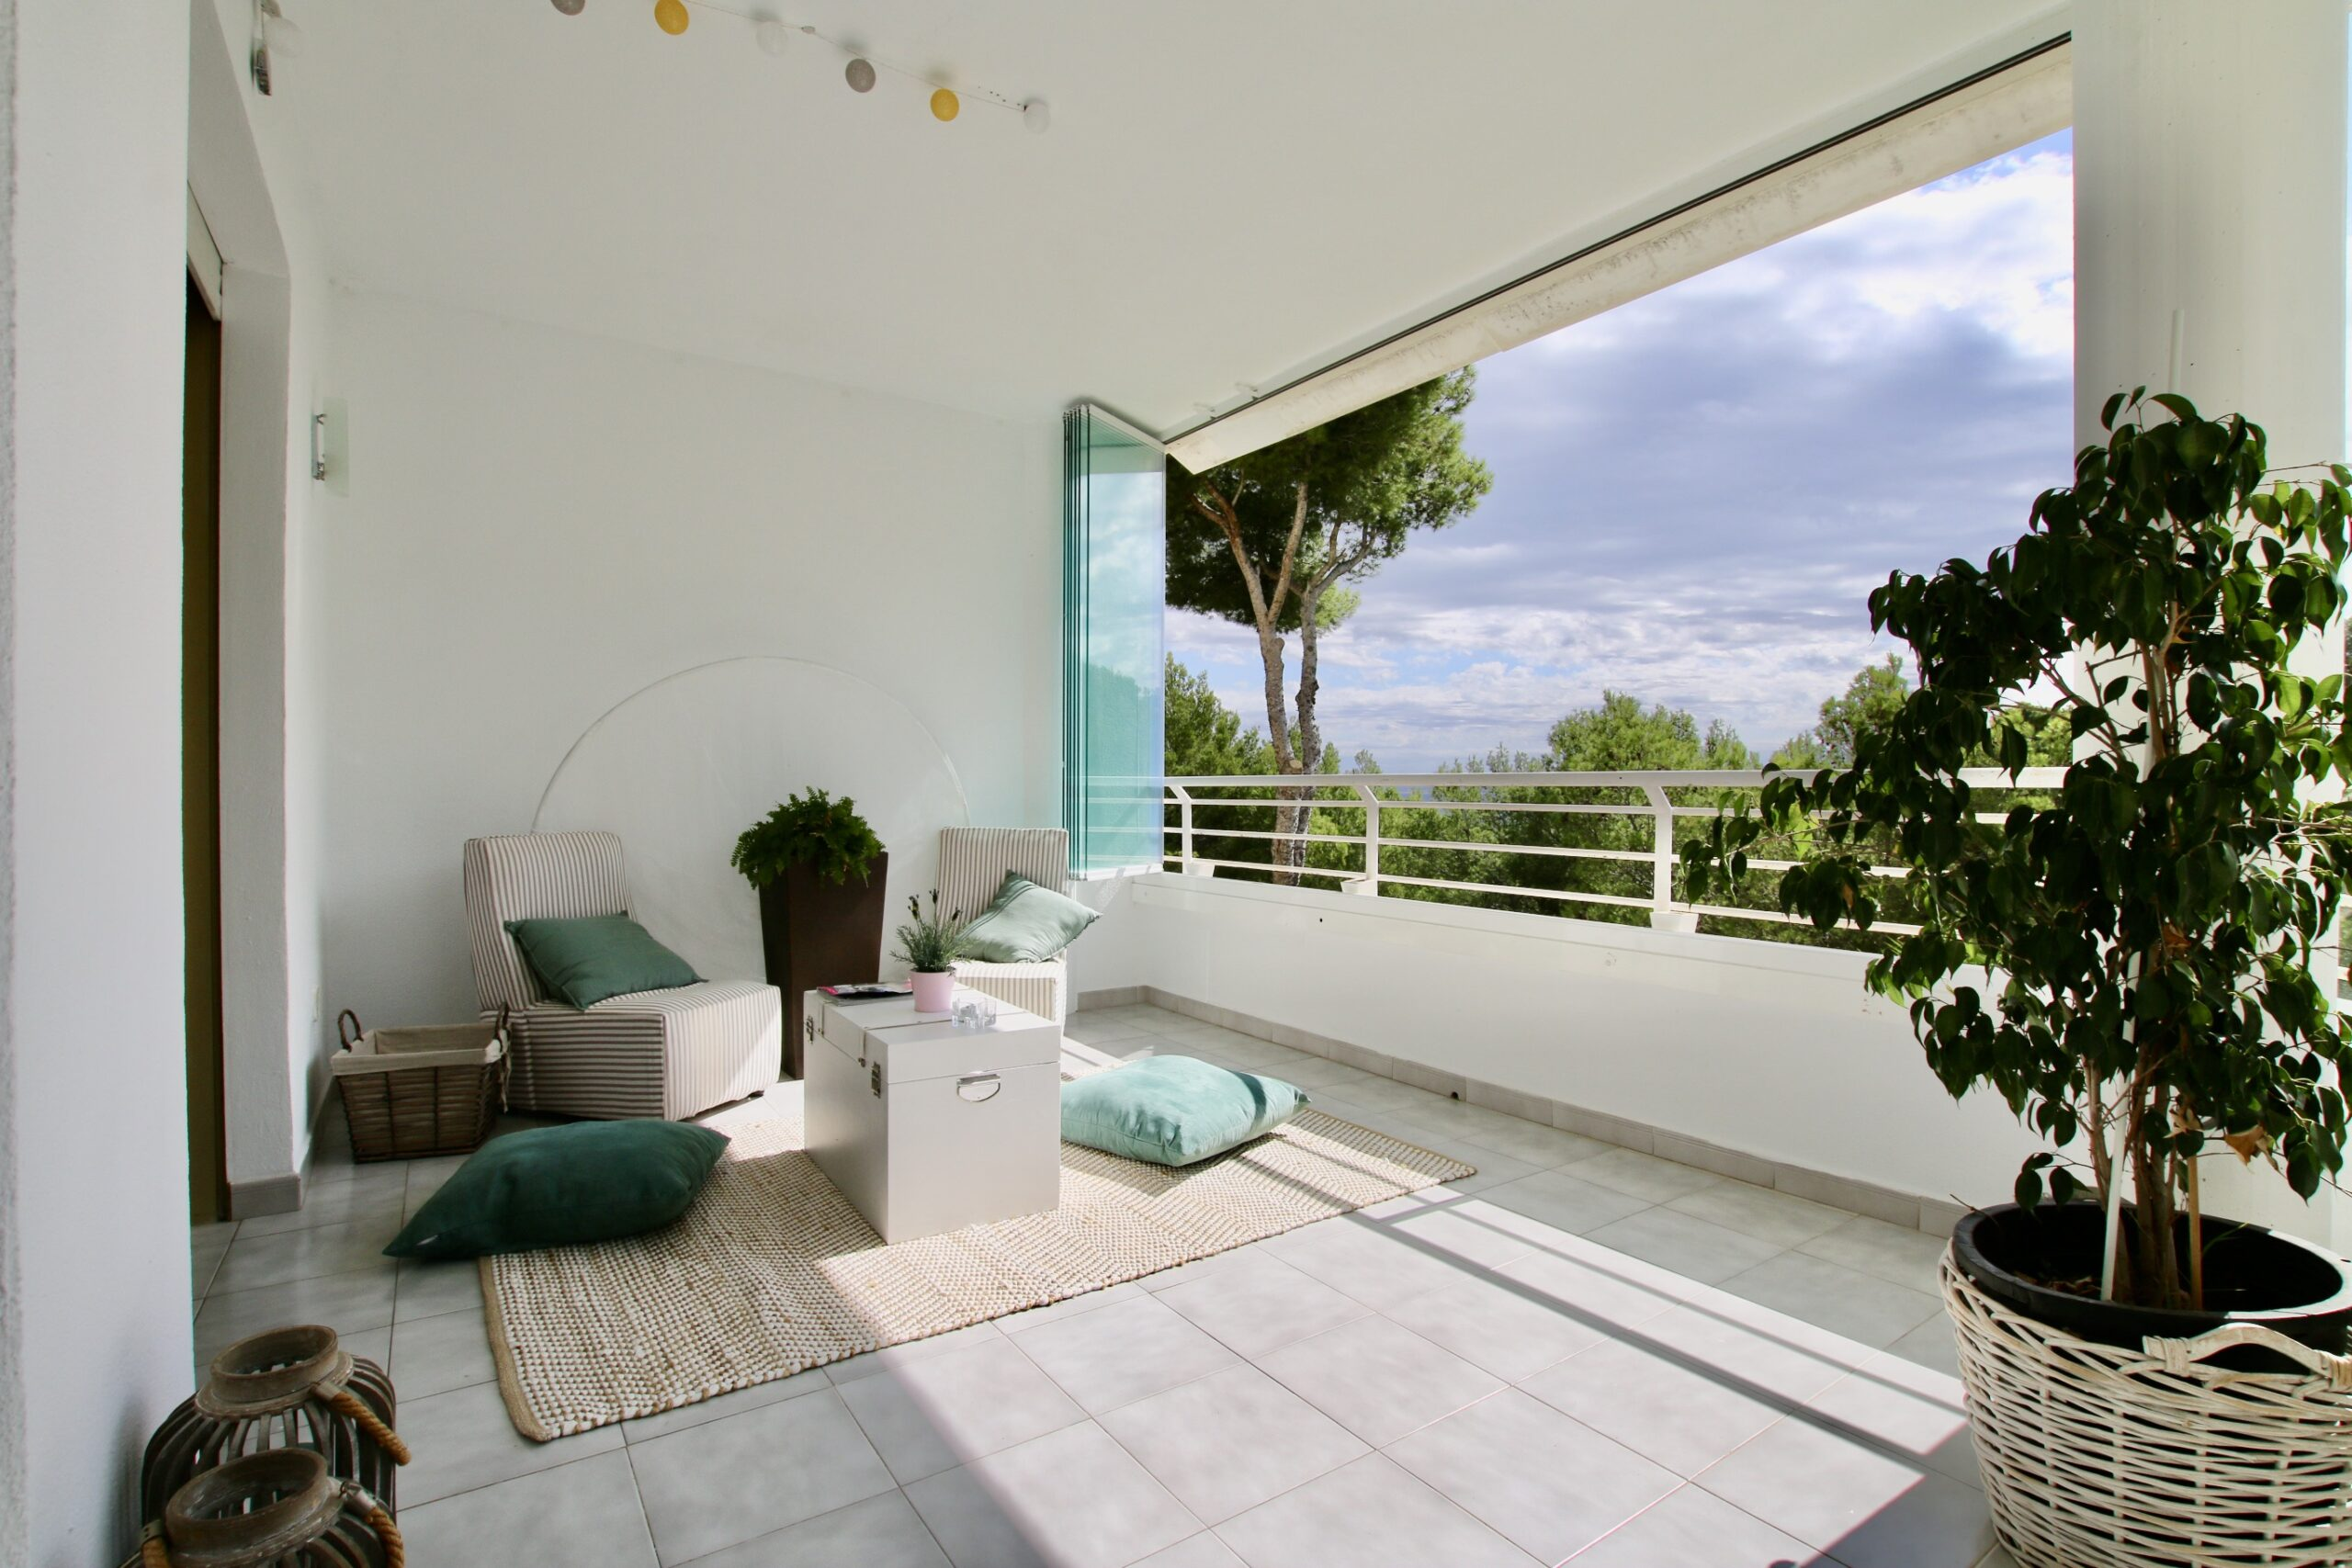 Charming and bright 3 beds apartment in the exclusive Cas Catala area @ Calvia, Mallorca